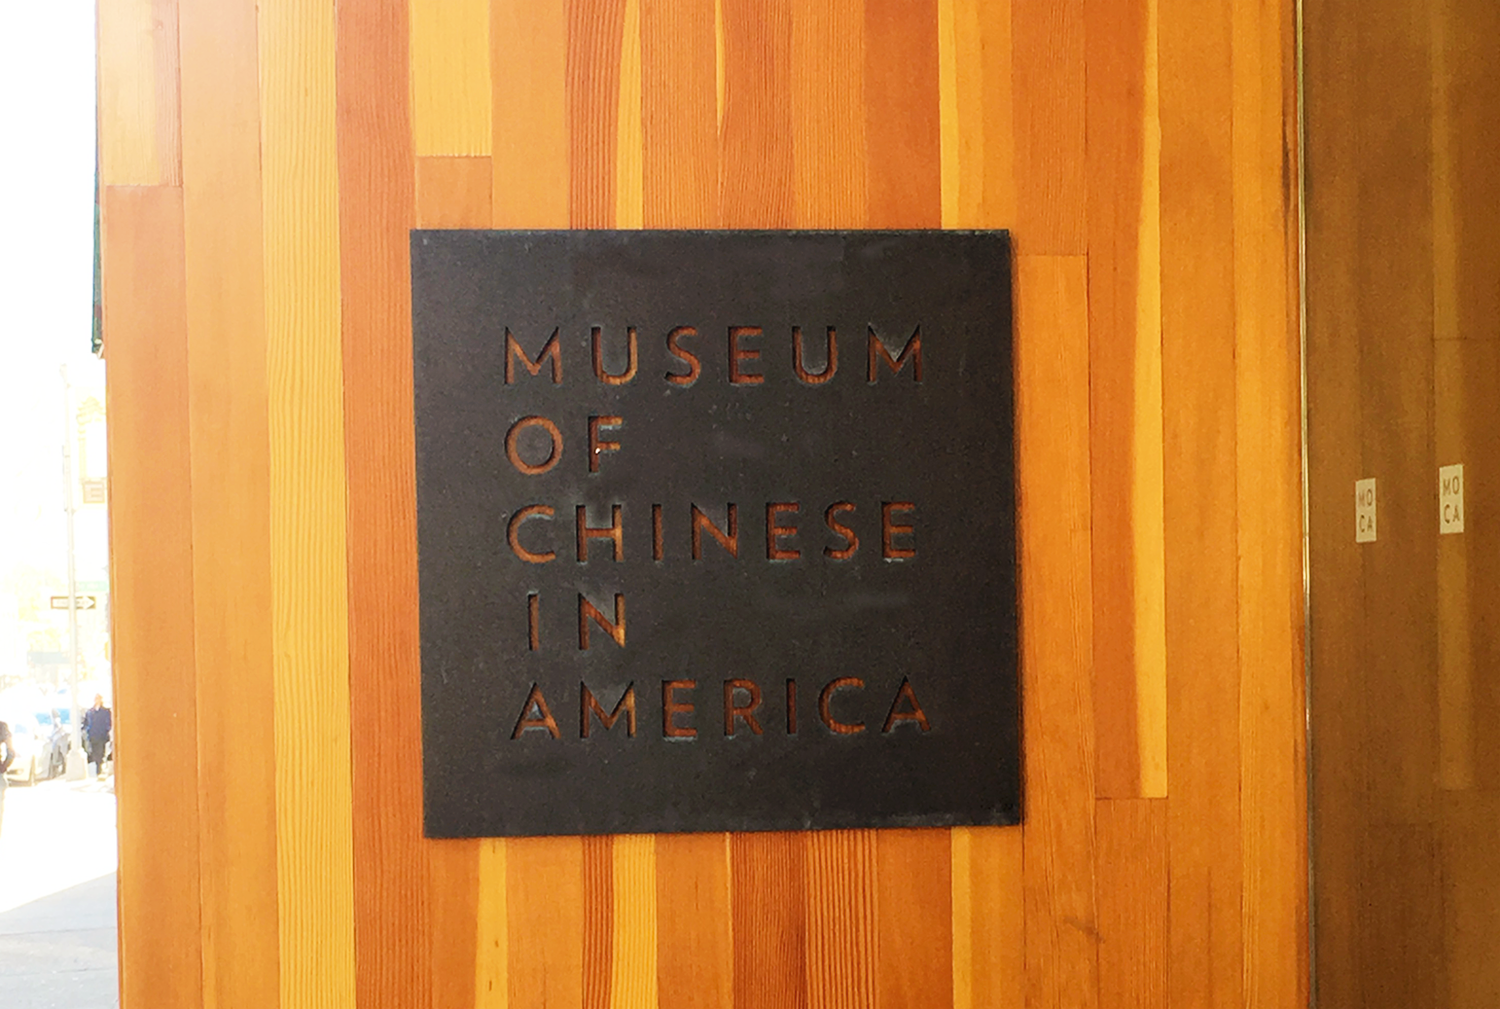 Museum of Chinese in America, Chinatown - NYC